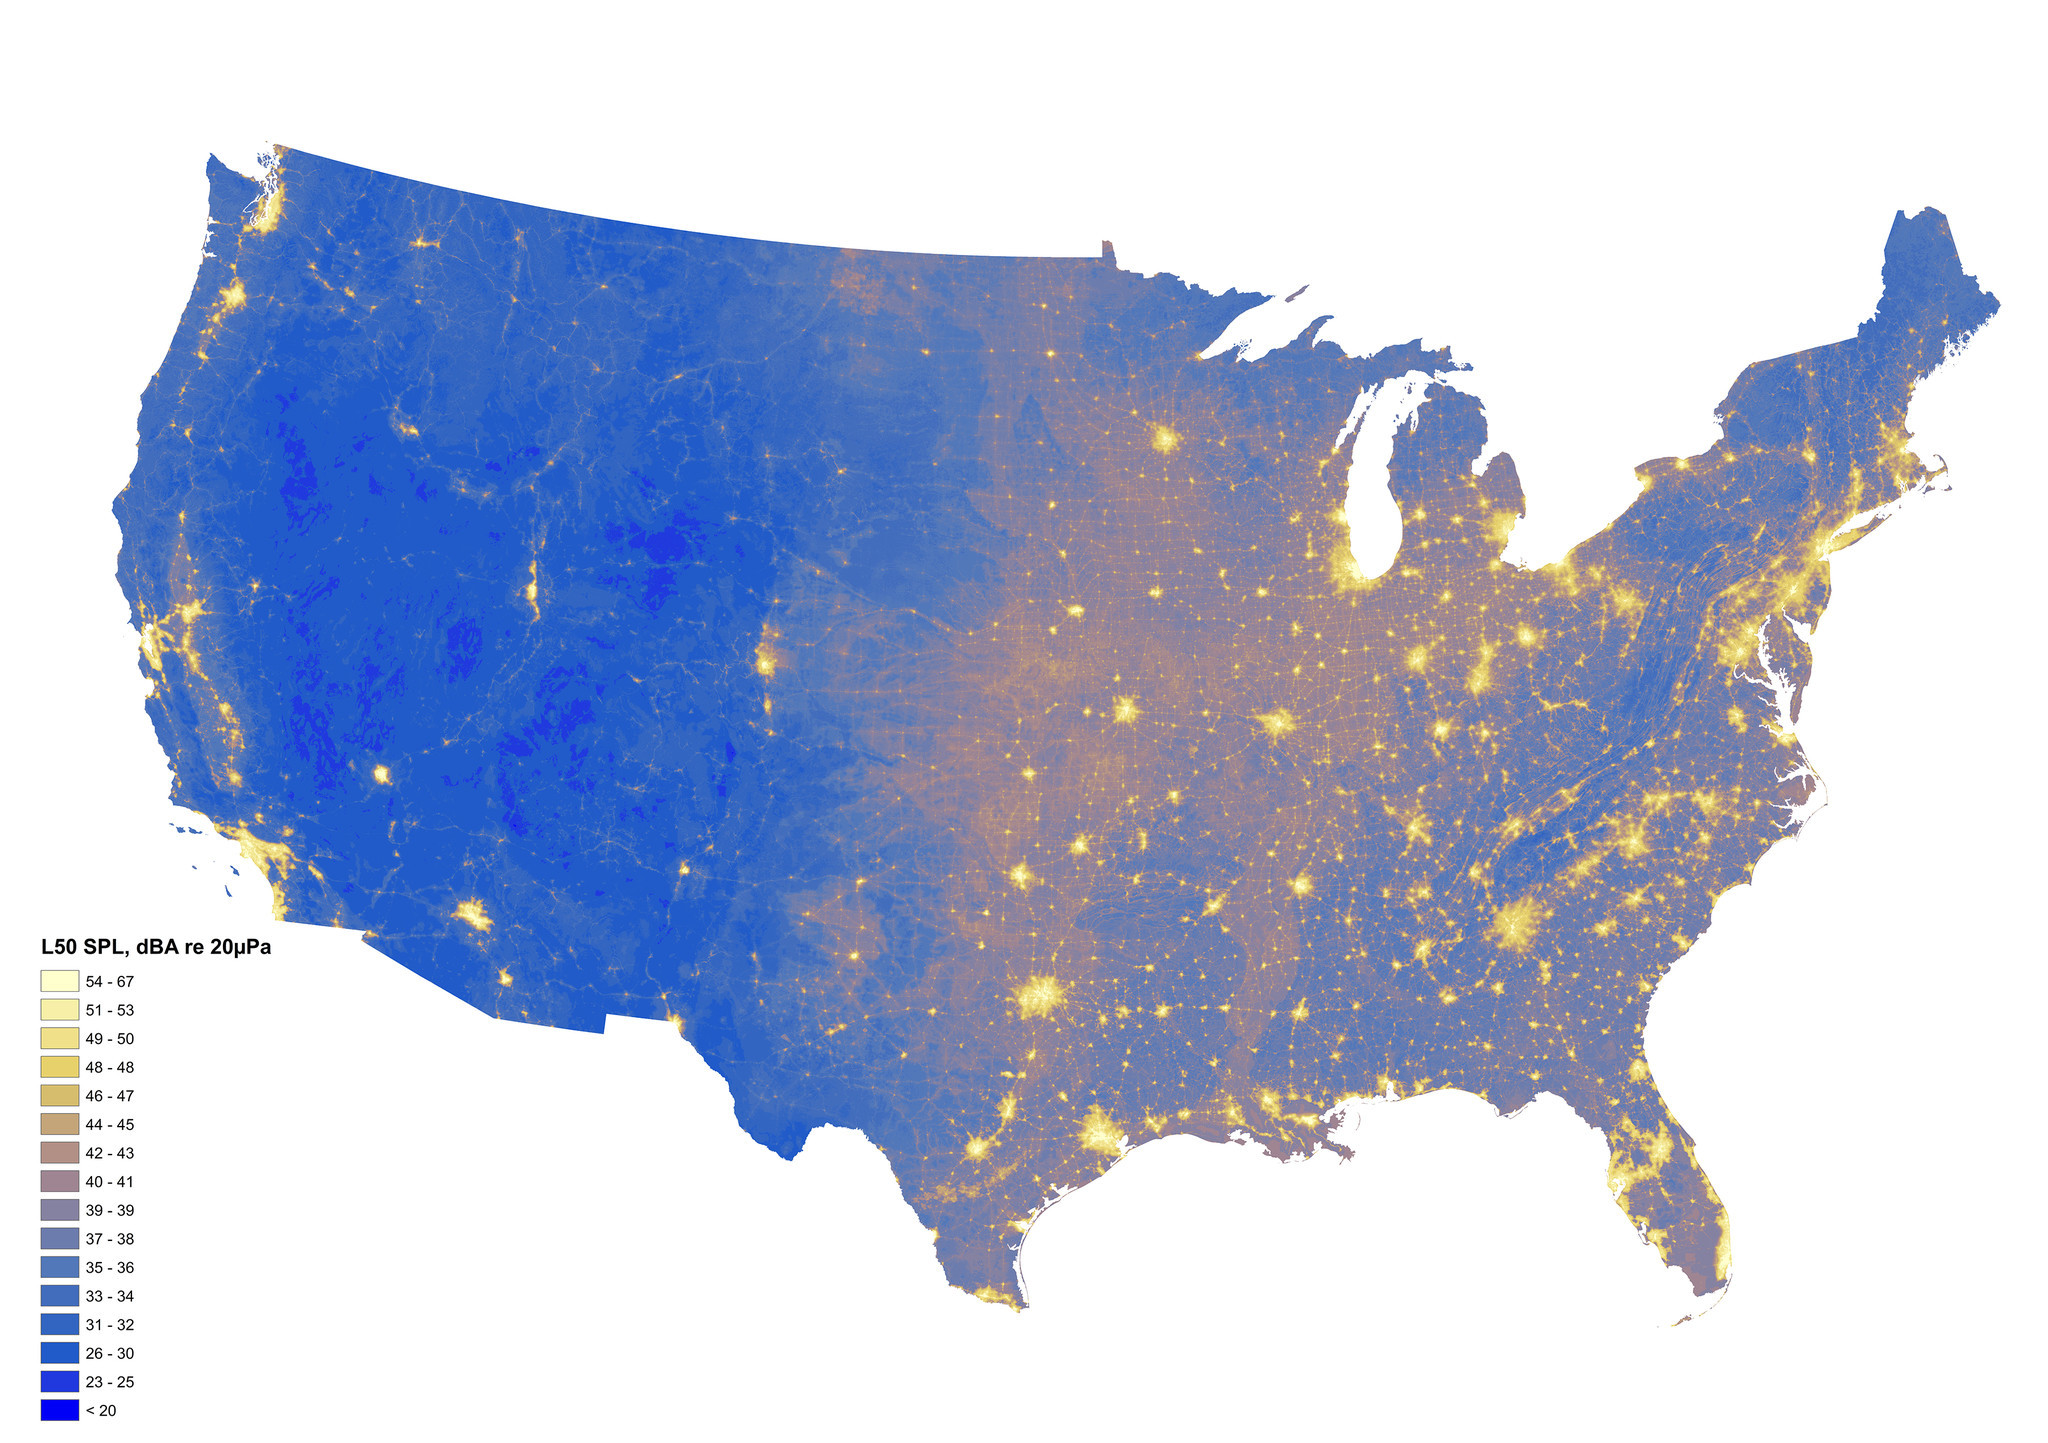 Map of projected ambient sound levels for a typical summer day across the contiguous United States, where lighter yellow indicates louder conditions and darker blue indicates quieter conditions.